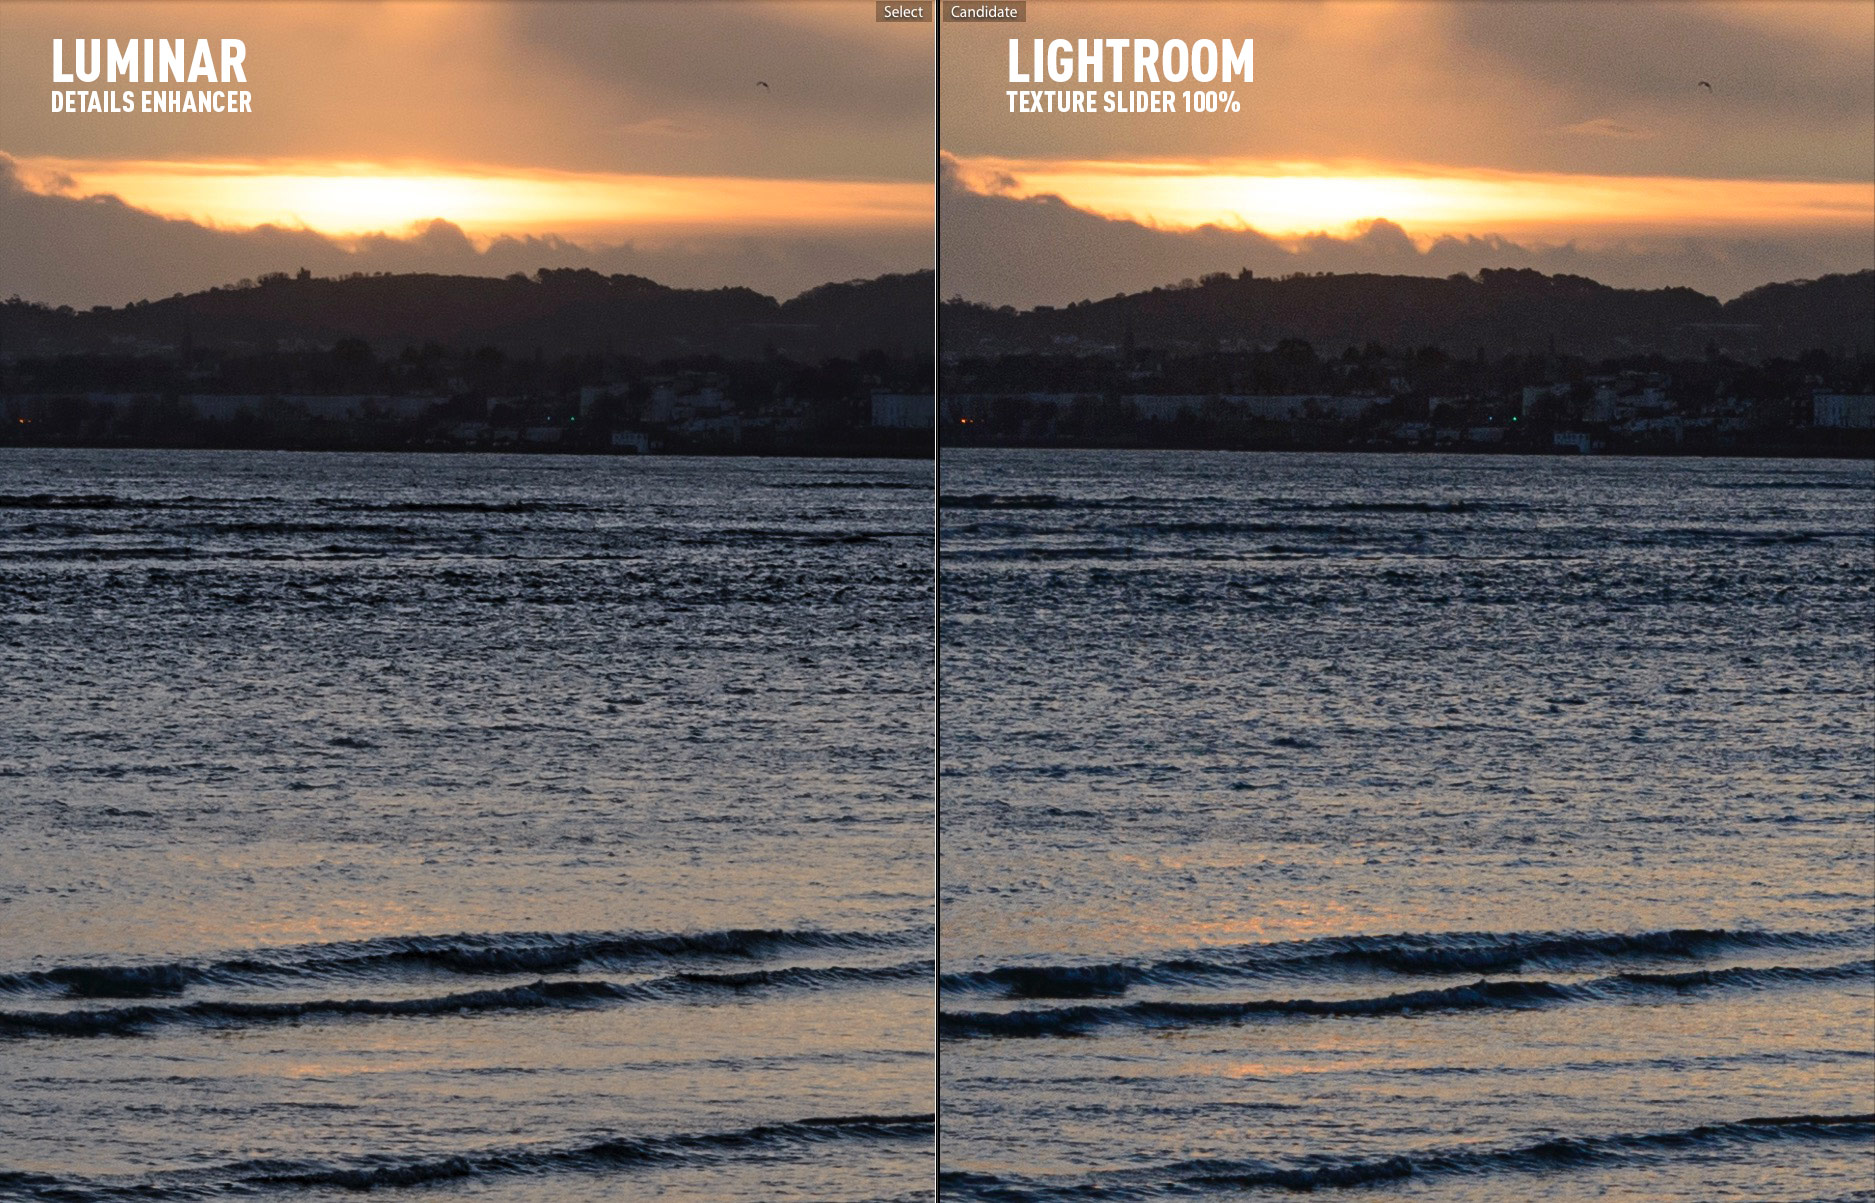 Luminar Details Enhancer vs Lightroom Texture